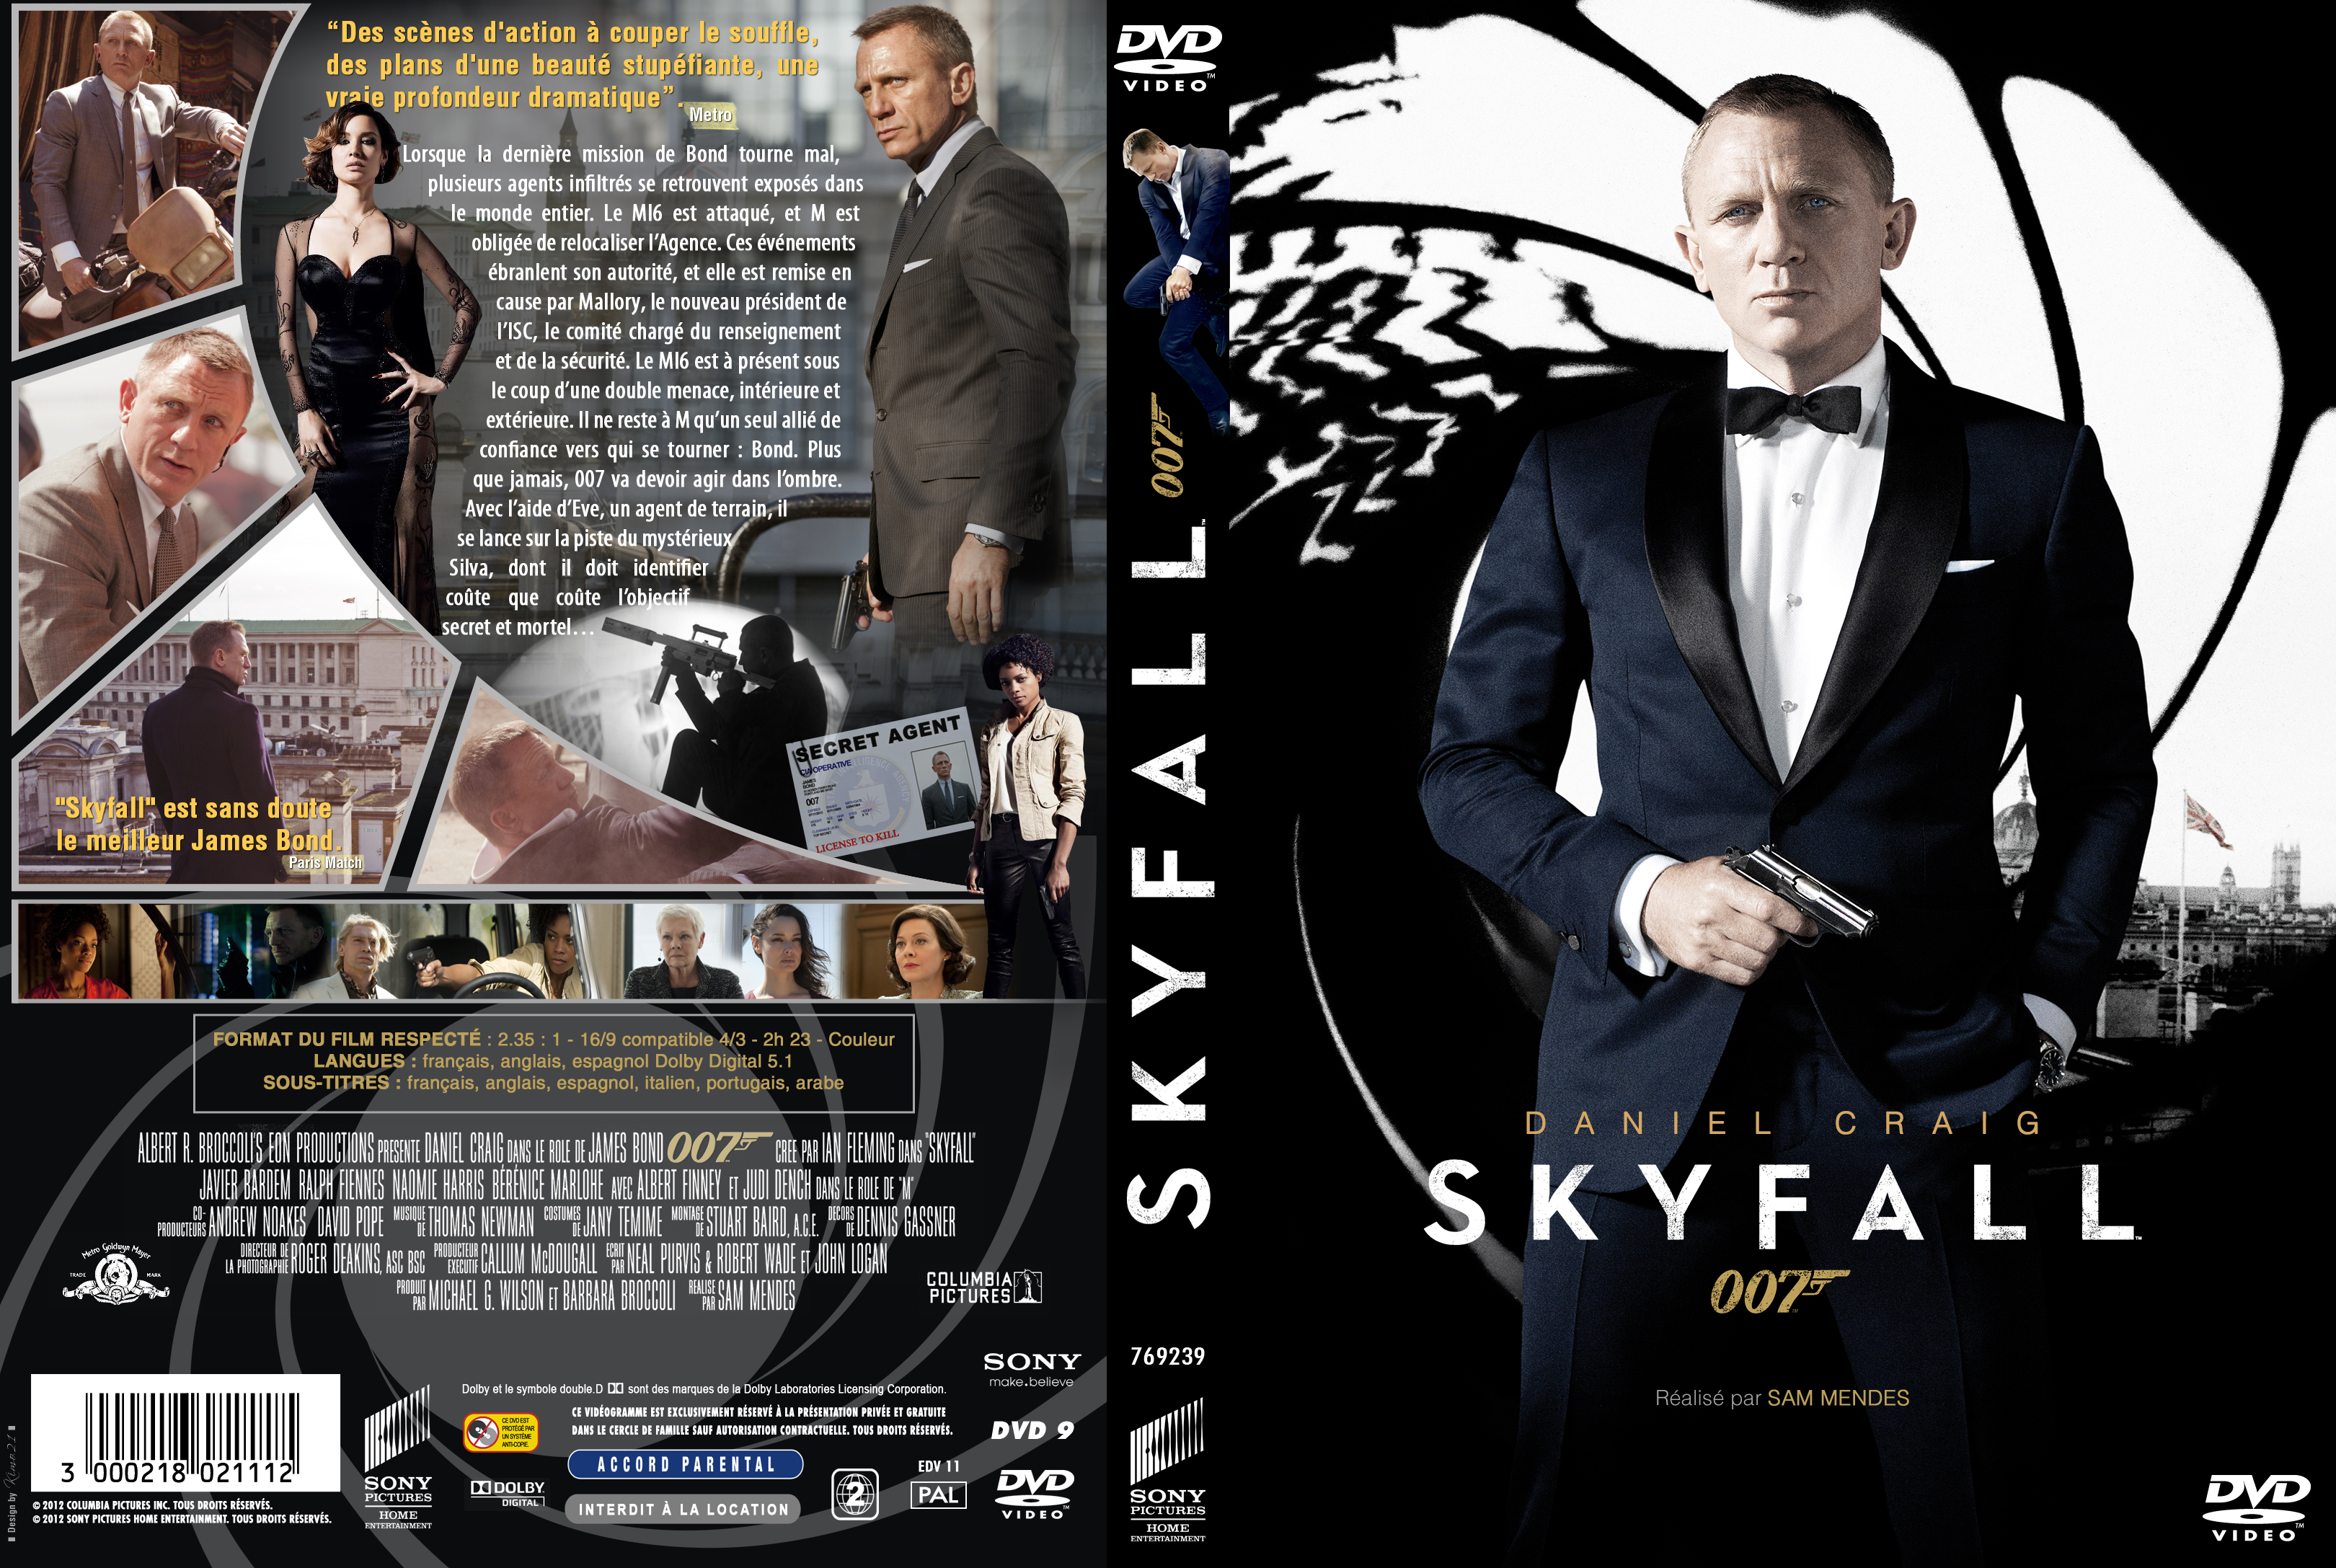 Jaquette DVD Skyfall custom